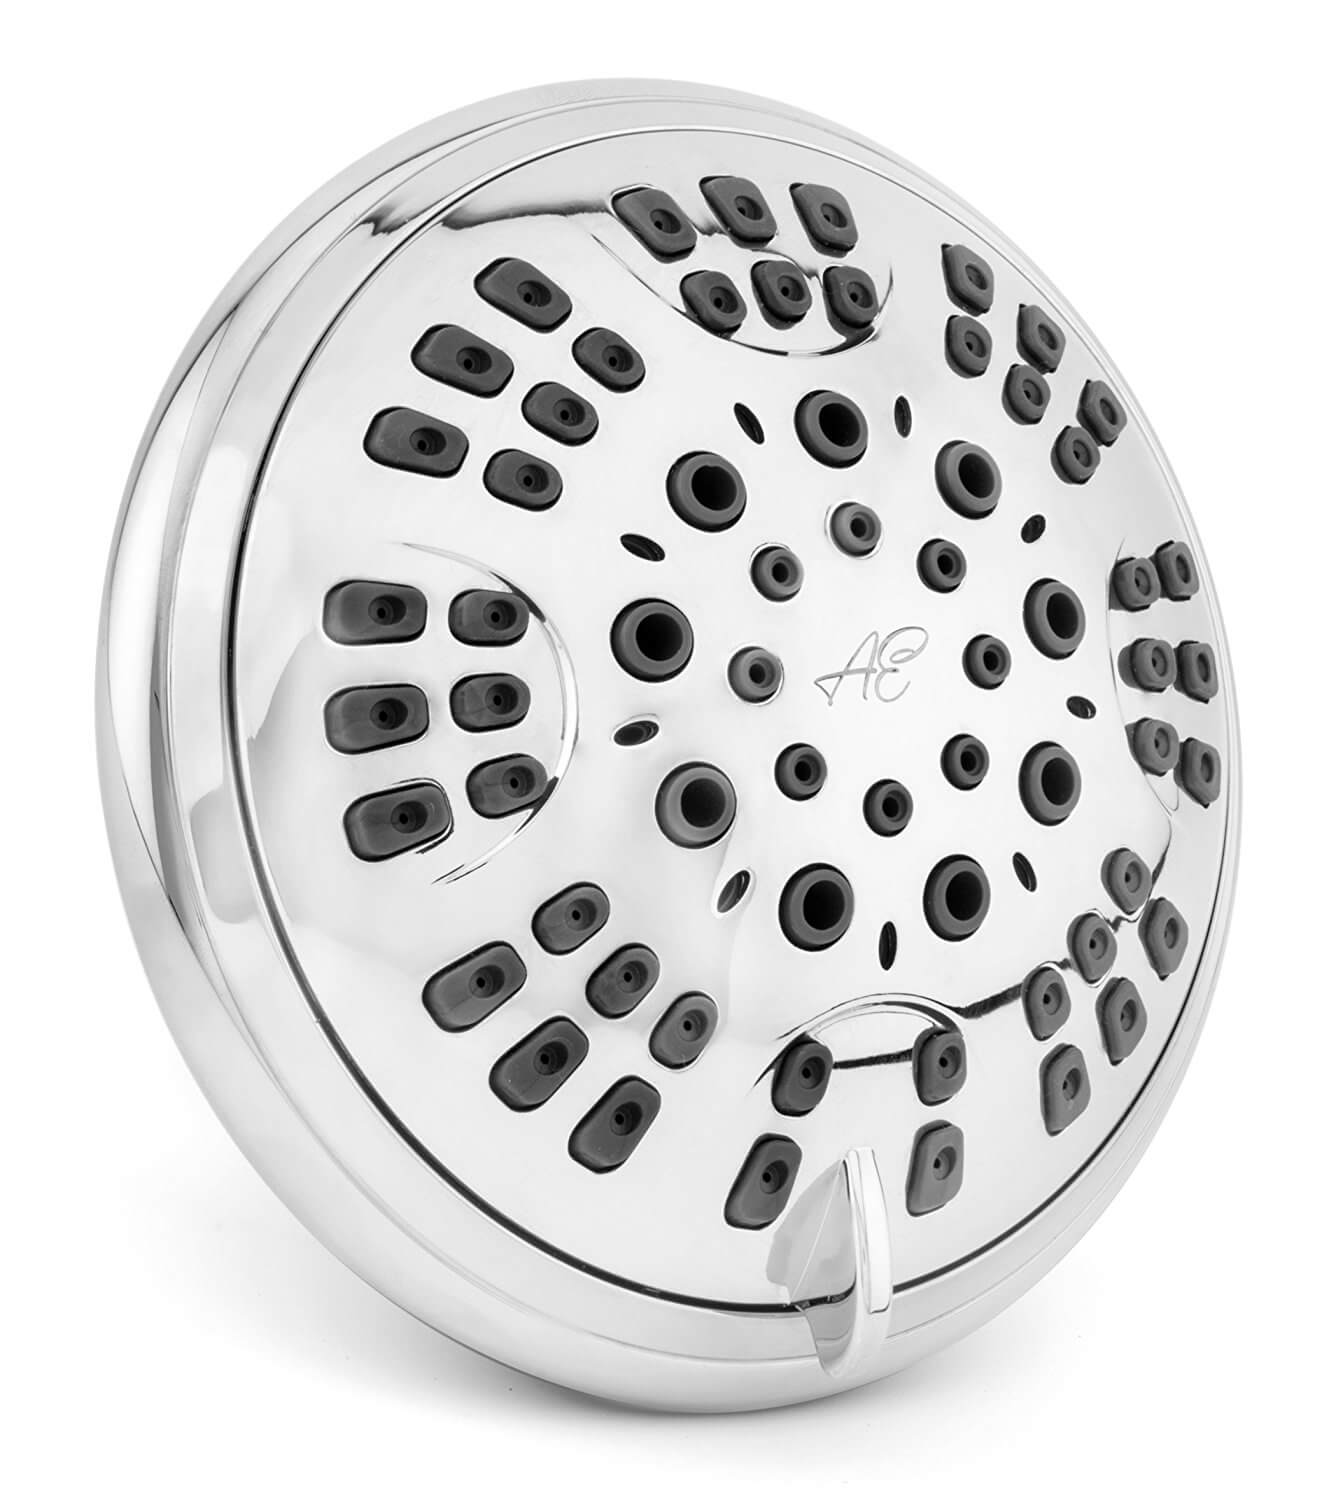 6 Function Luxury Shower Head - Amazing High Pressure, Wall Mount, Adjustable Showerhead